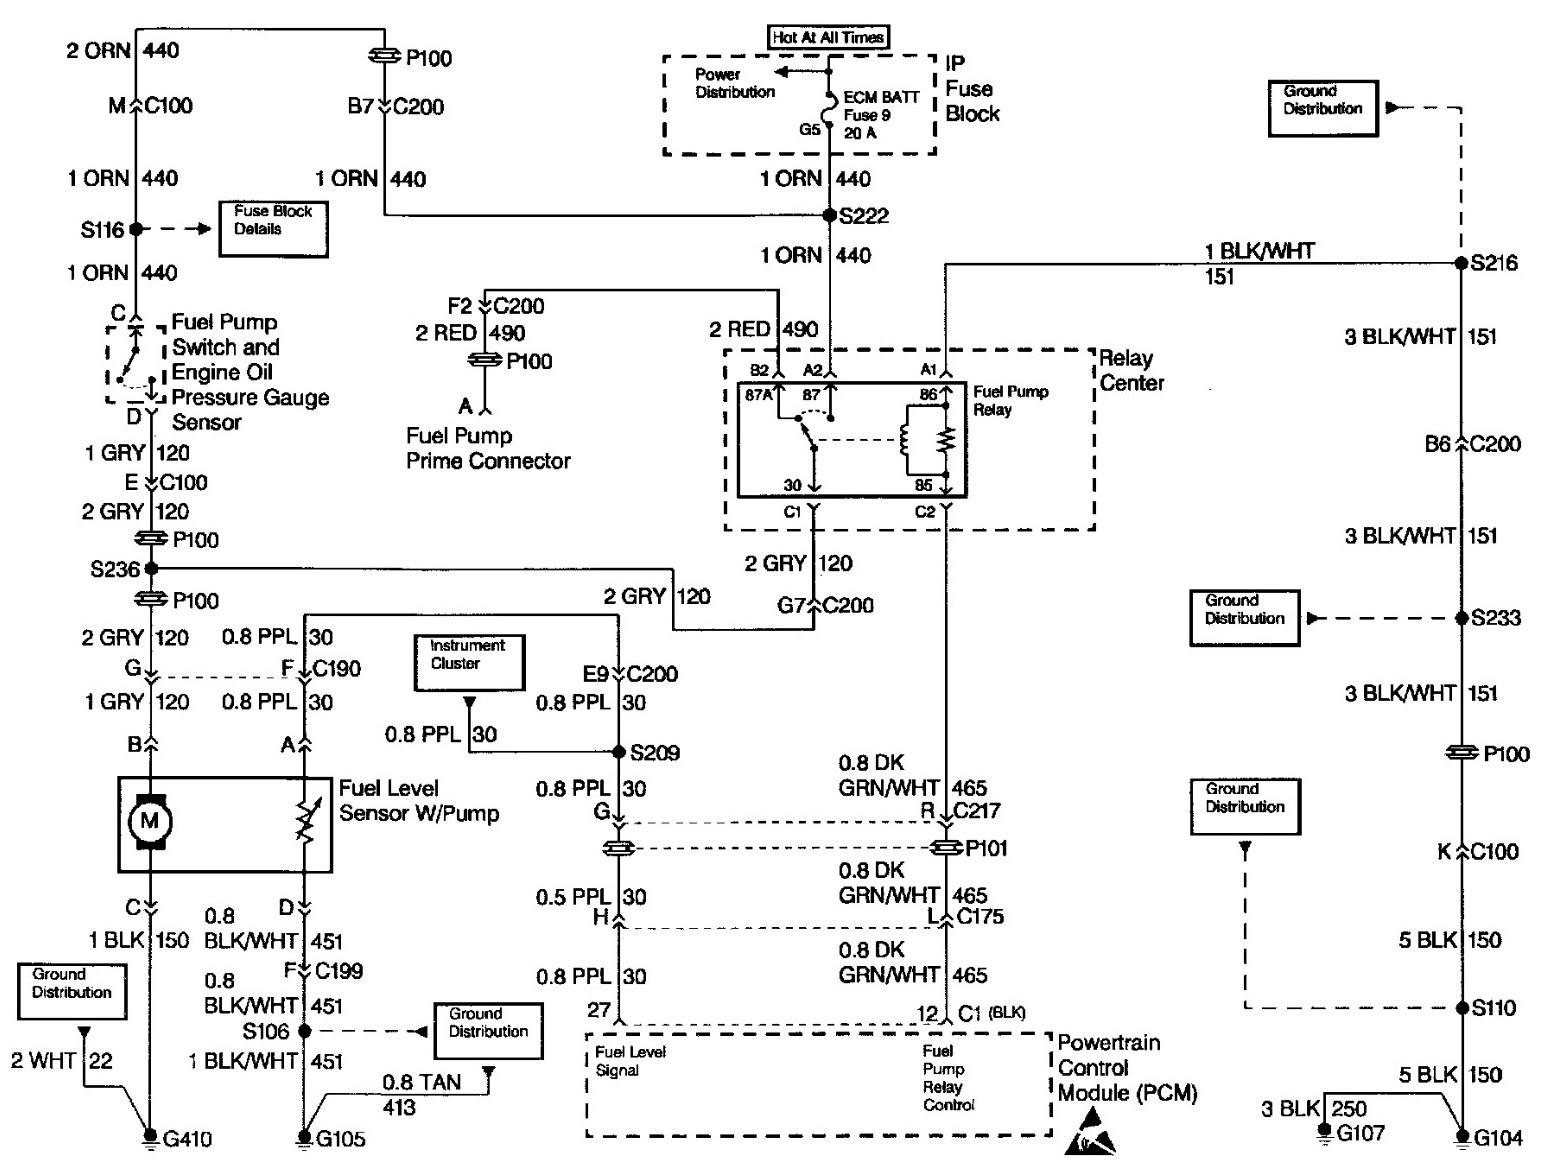 Download Diagram Chevy S10 Ignition Wiring Diagram Hd Quality 3dprintdiagram Bruxelles Enscene Be